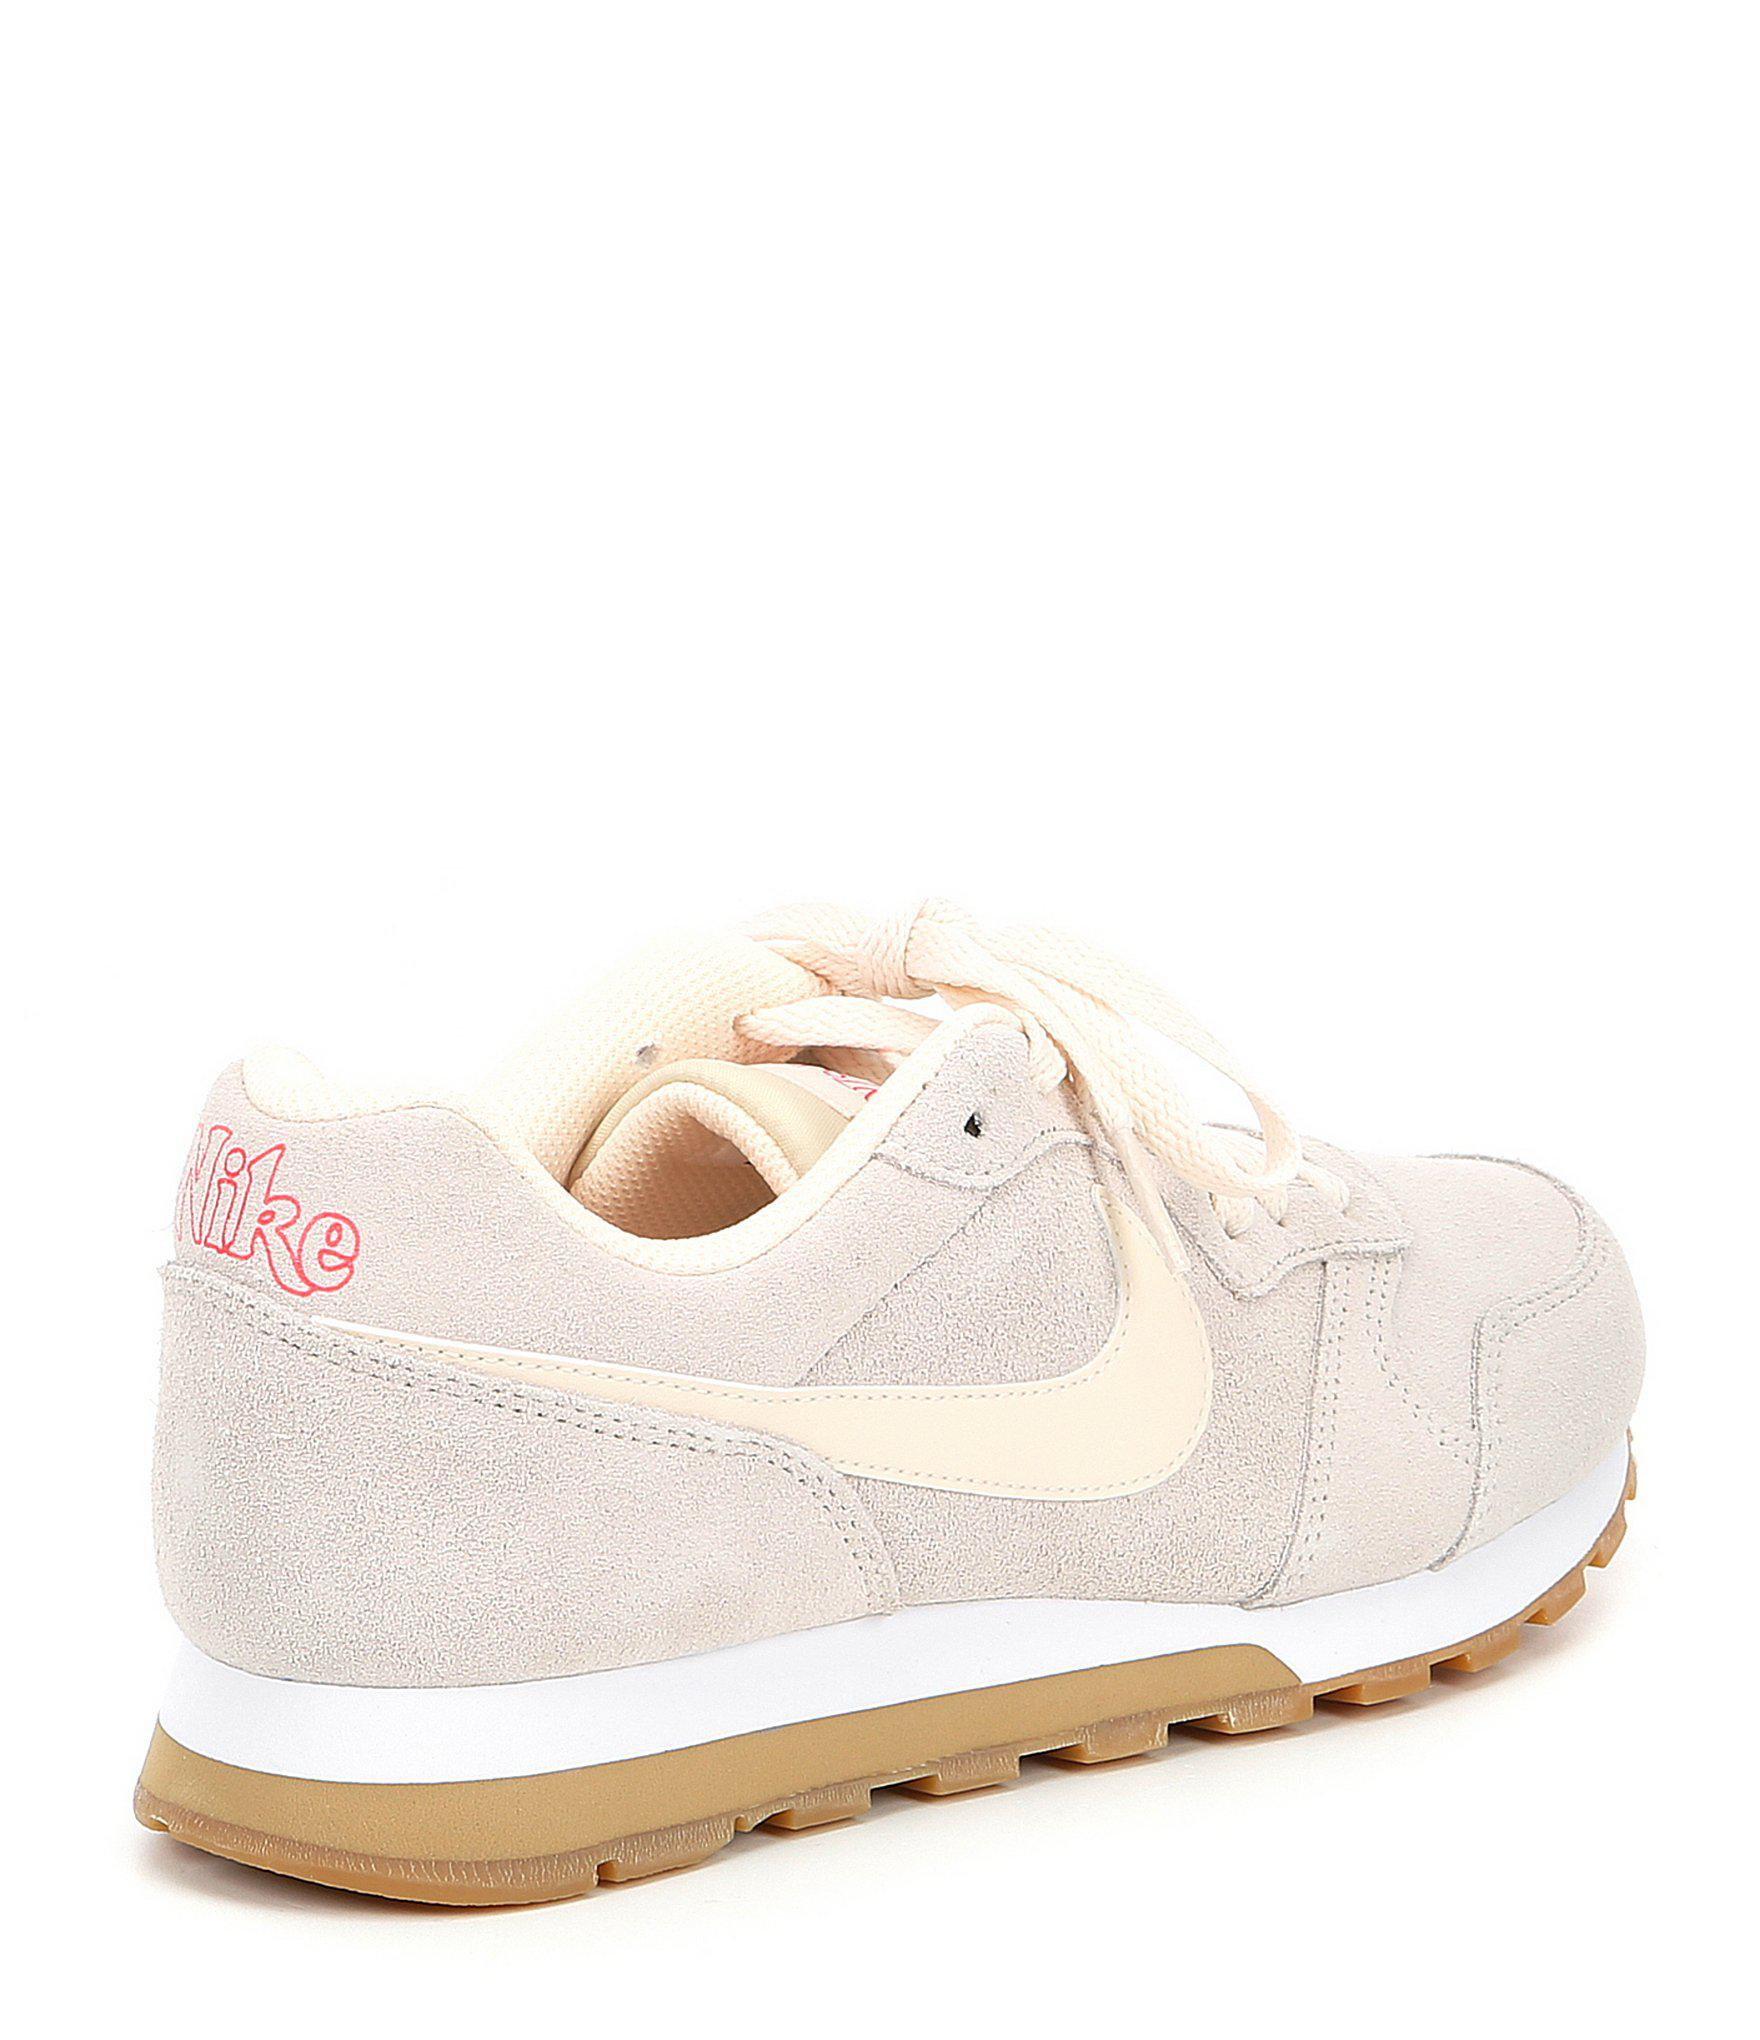 new product 43a67 5cda3 Nike Women s Md Runner 2 Se Retro Running Shoe in White - Lyst